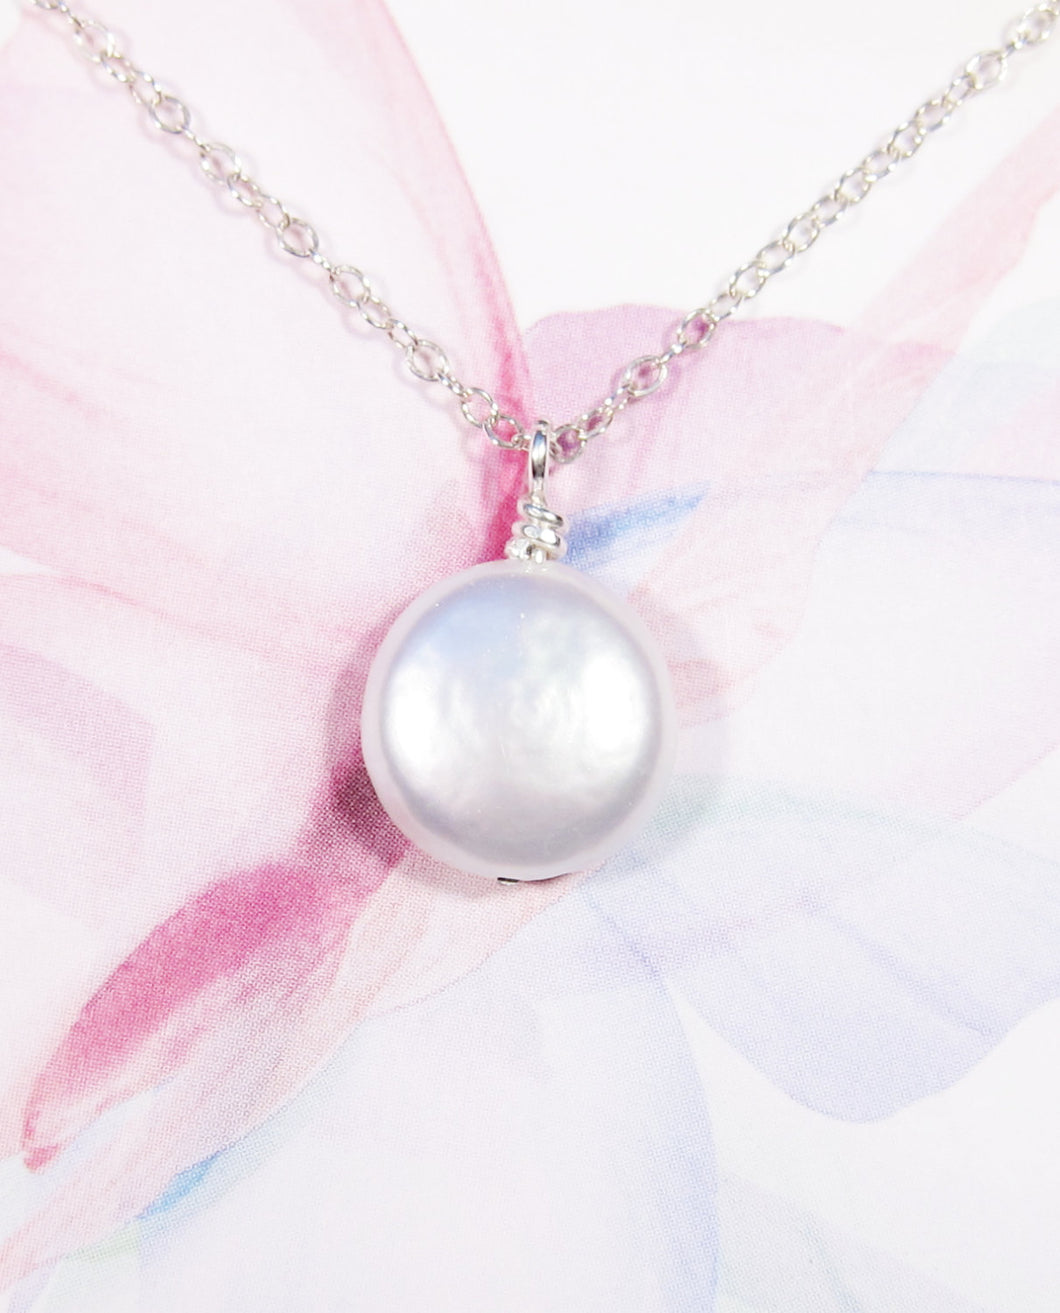 Natural Freshwater Coin Pearl Necklace-Bridesmaid Gift Set of 5,6,7,8,9,10,11,12-Sterling Silver